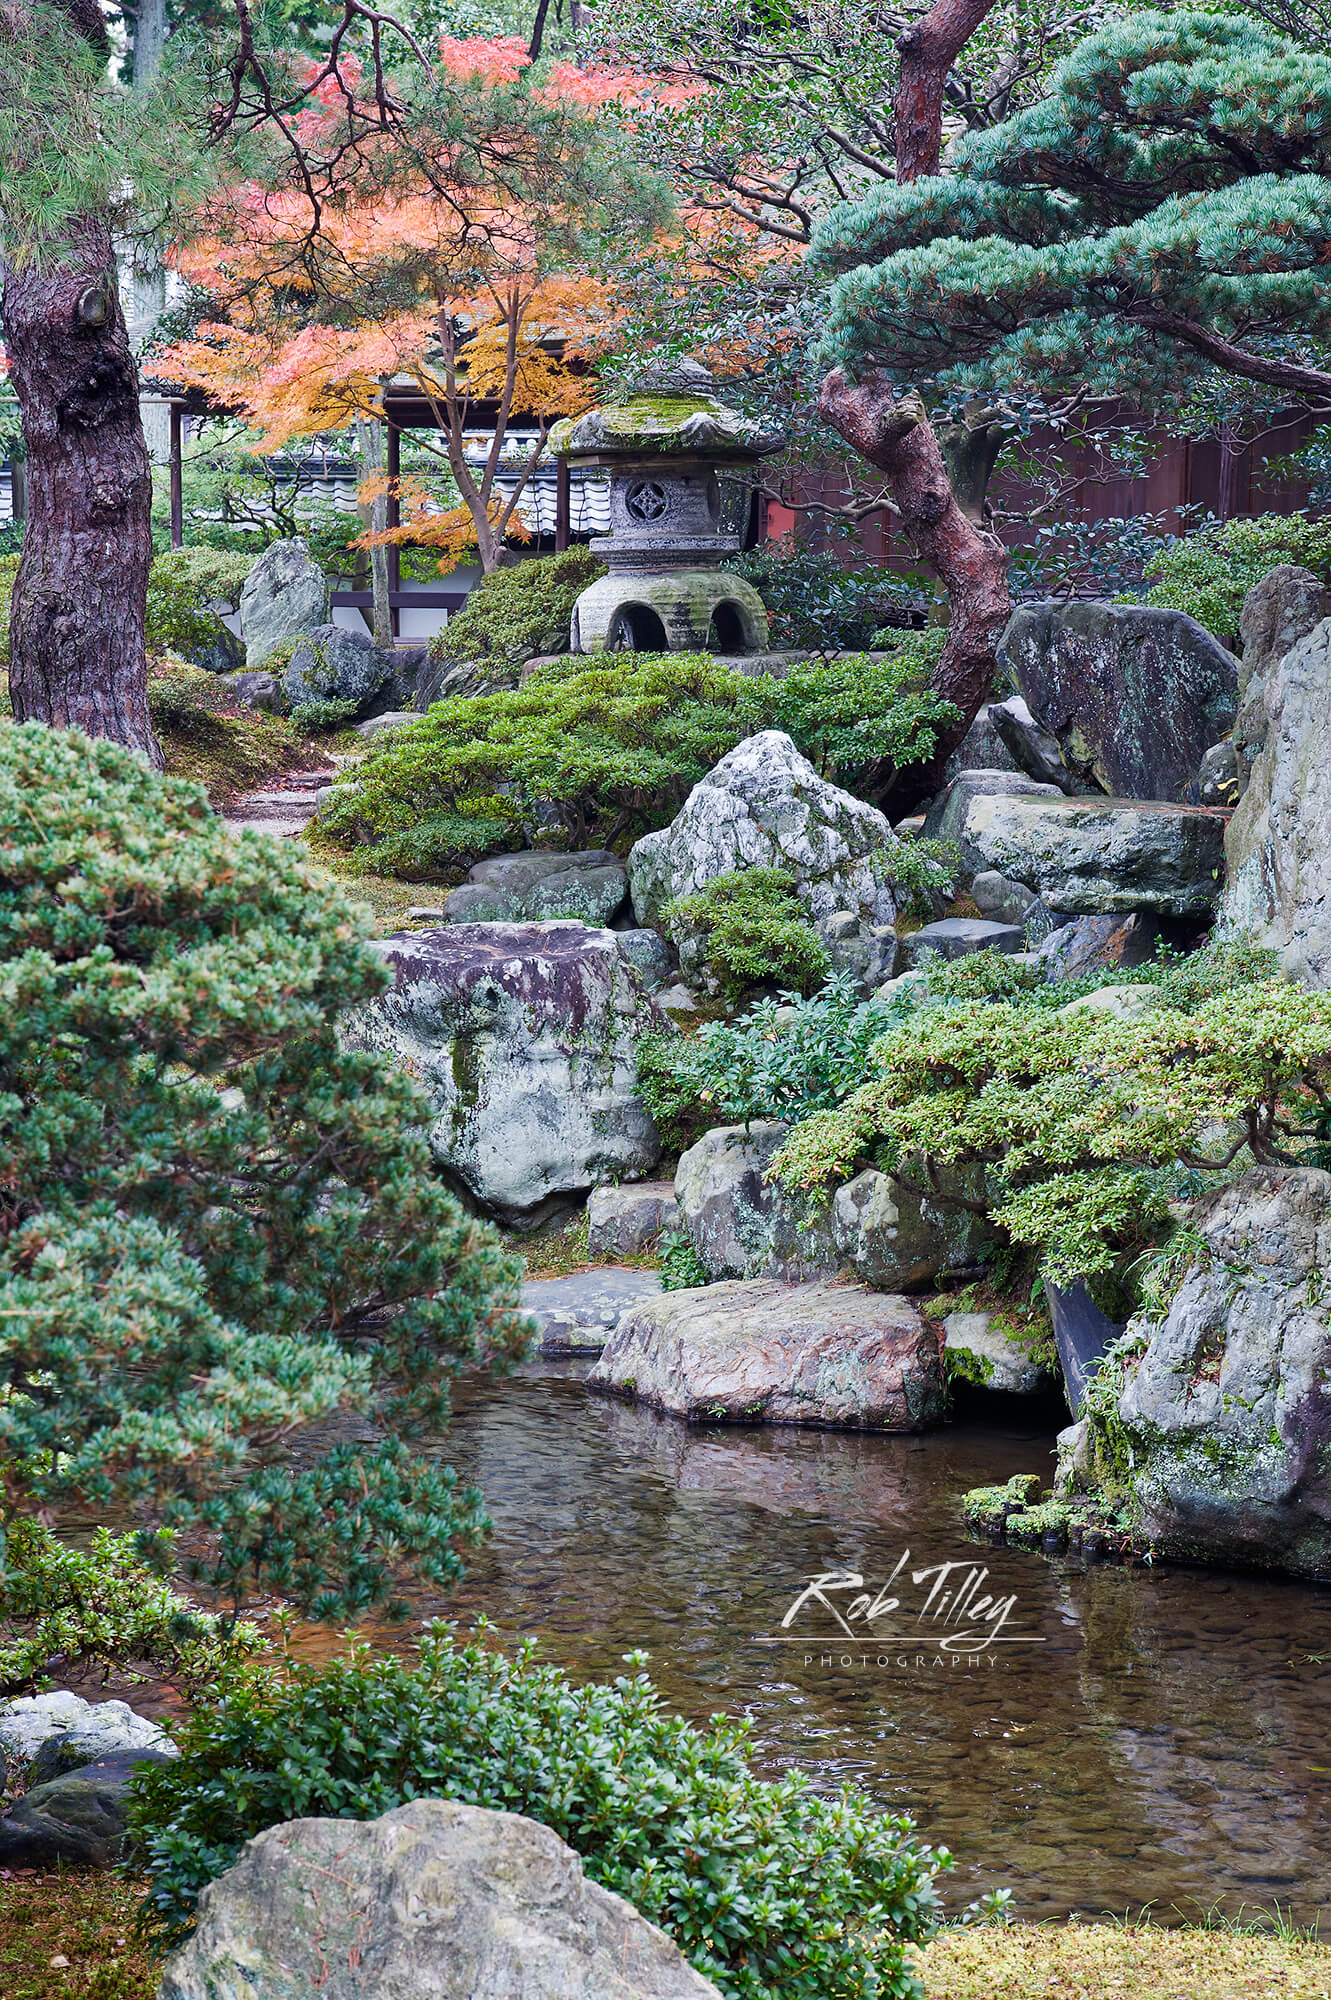 Kyoto Imperial Palace Garden II